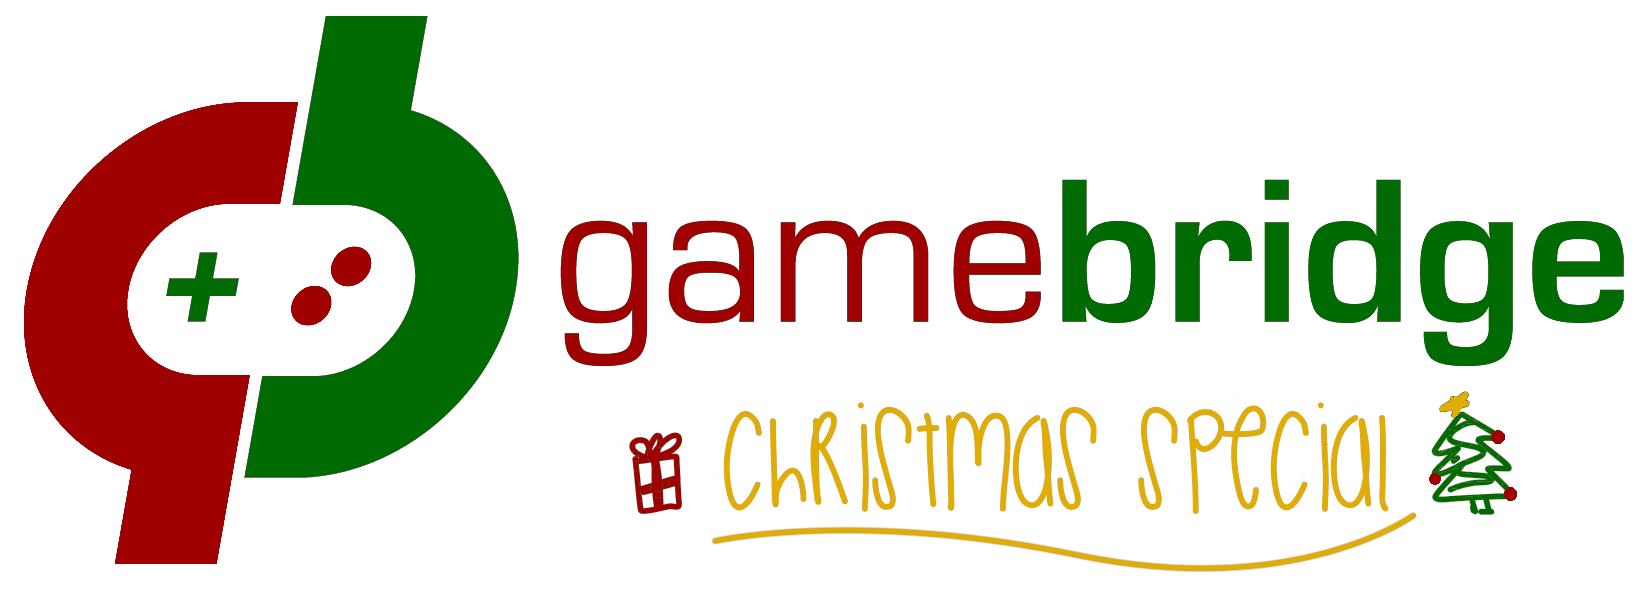 Game Bridge Christmas logo